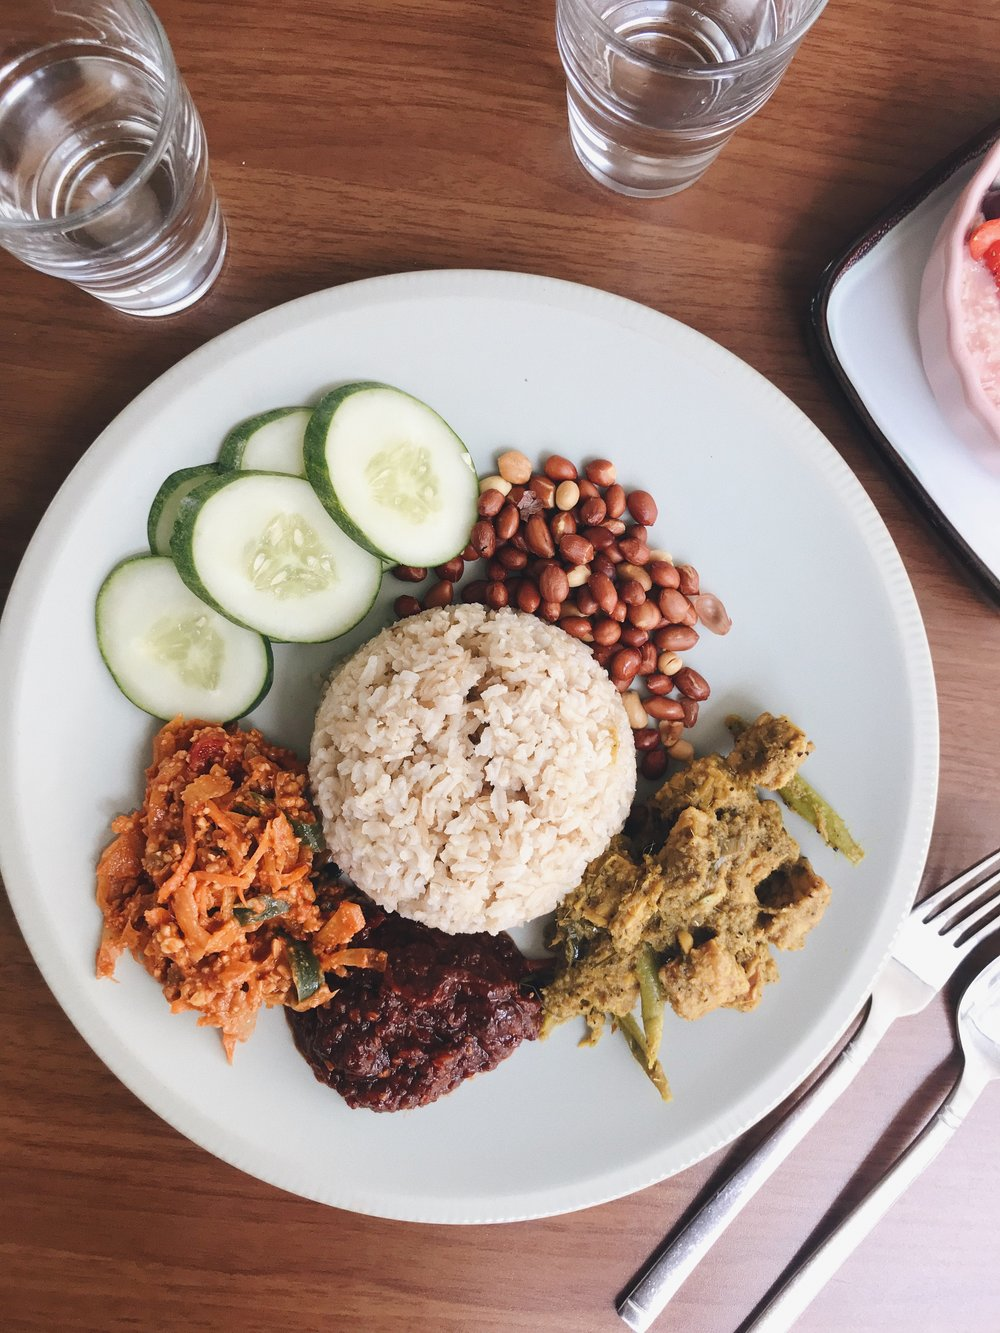 Nasi lemak kukus with tempeh rendang, achar, steamed coconut brown rice & sambal.  - RM21